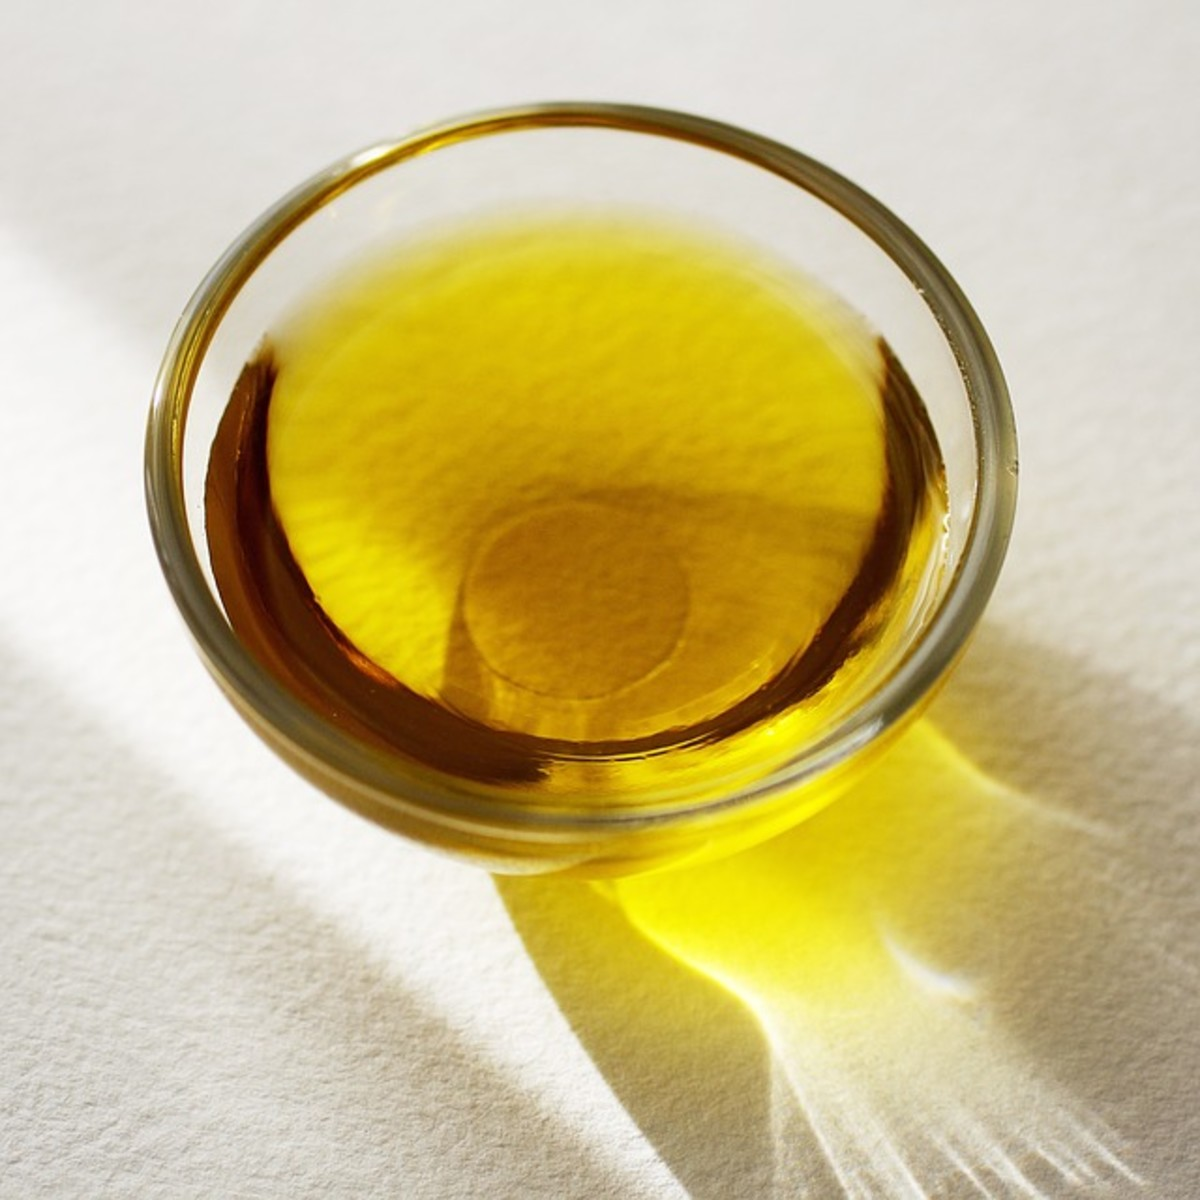 Oil beats out butter in cost!